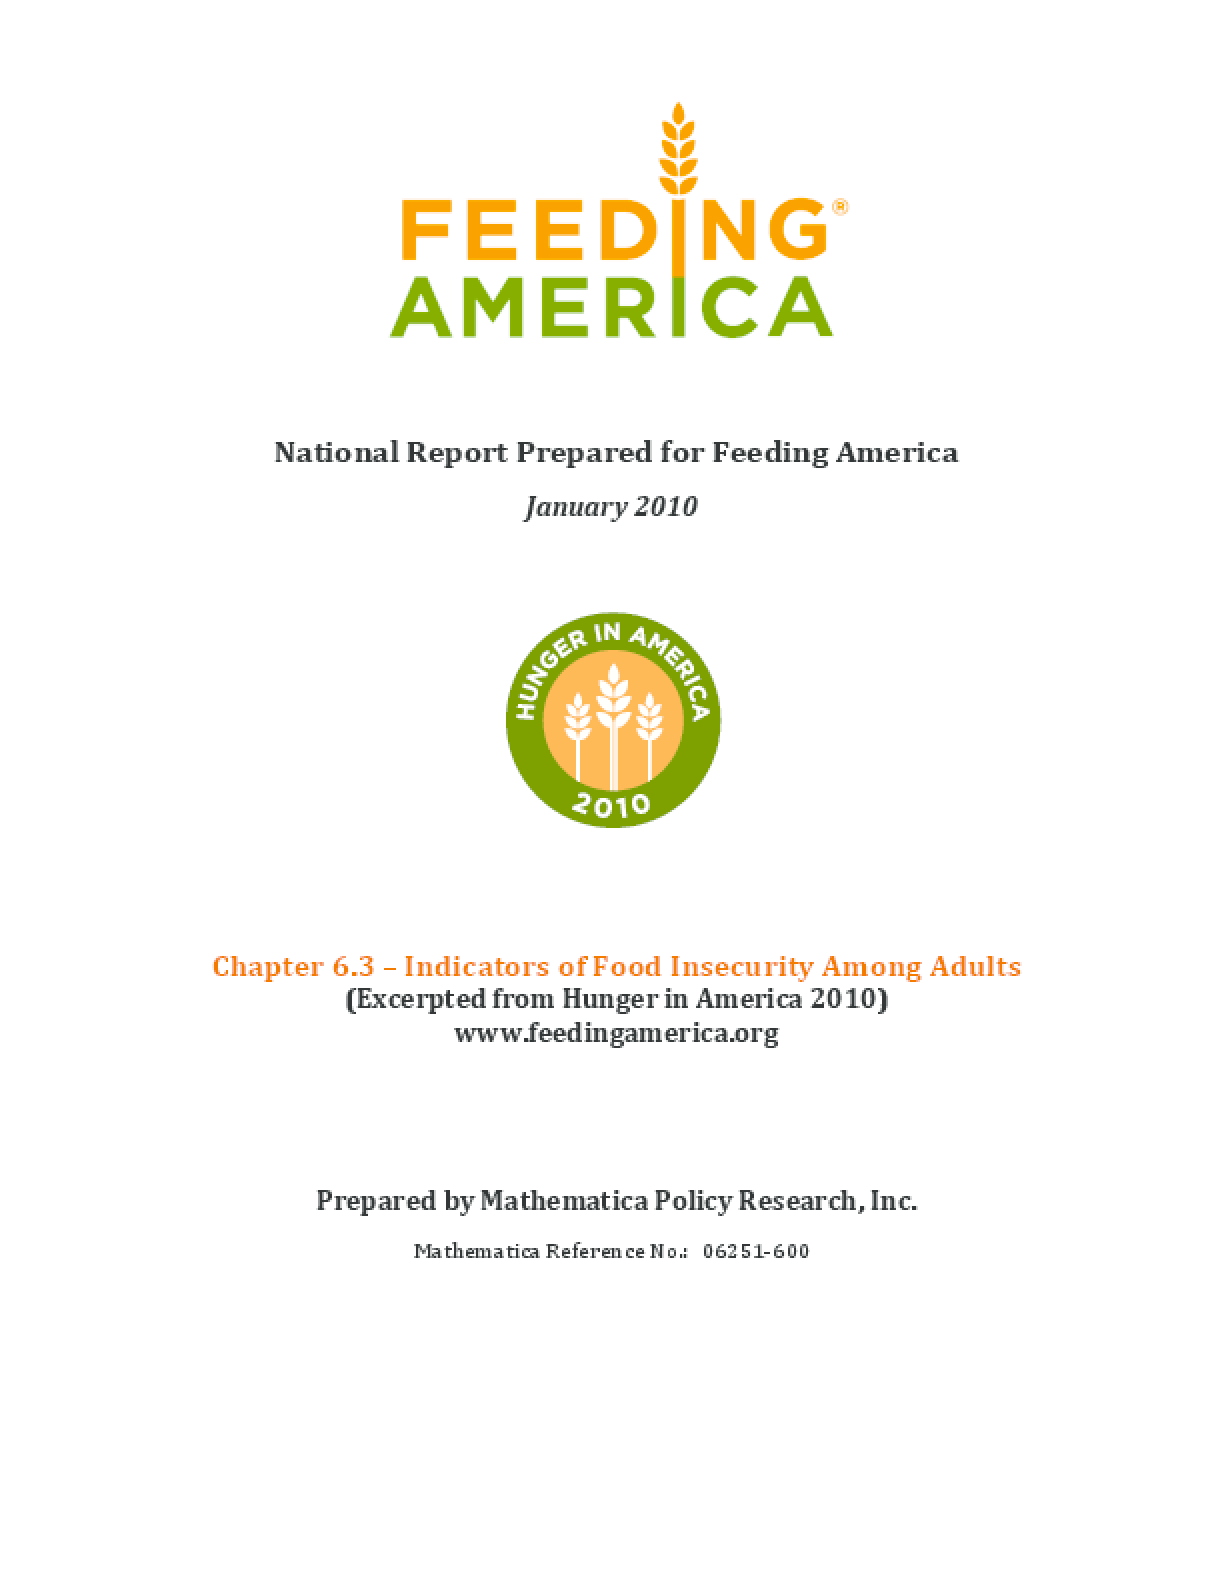 Indicators of Food Insecurity Among Adult Feeding America Clients